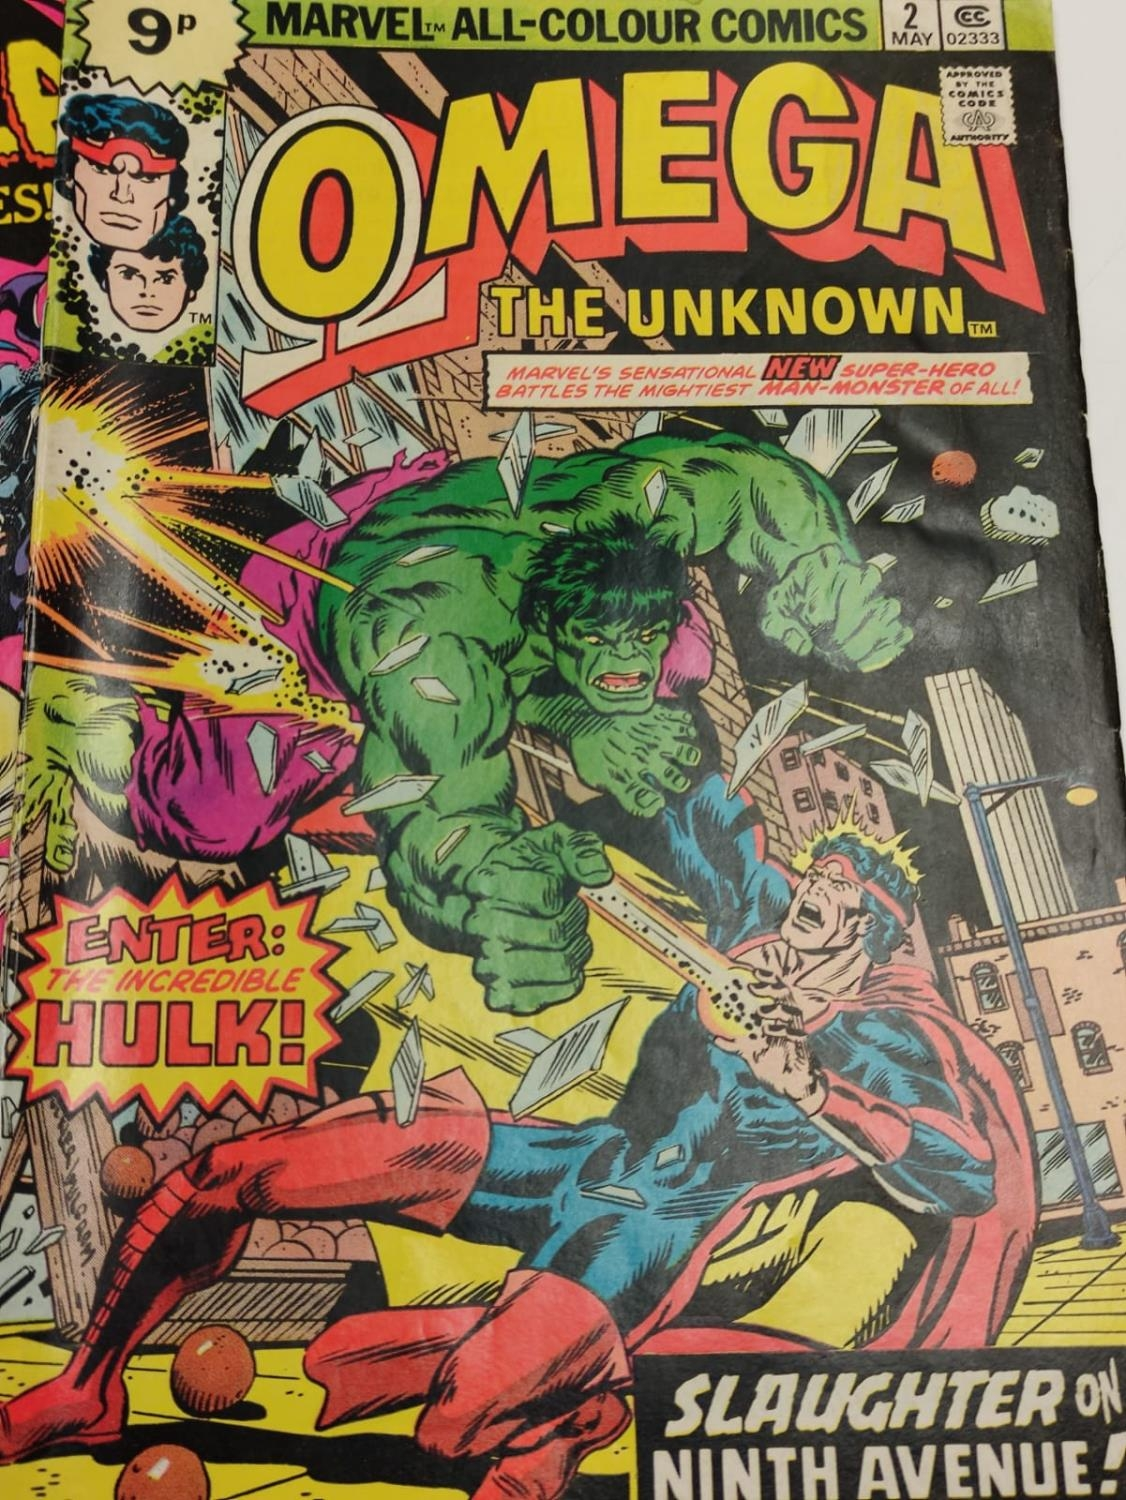 5 editions of Special Vintage Marvel Comics including 'The Tomb of Dracula'. - Image 7 of 15